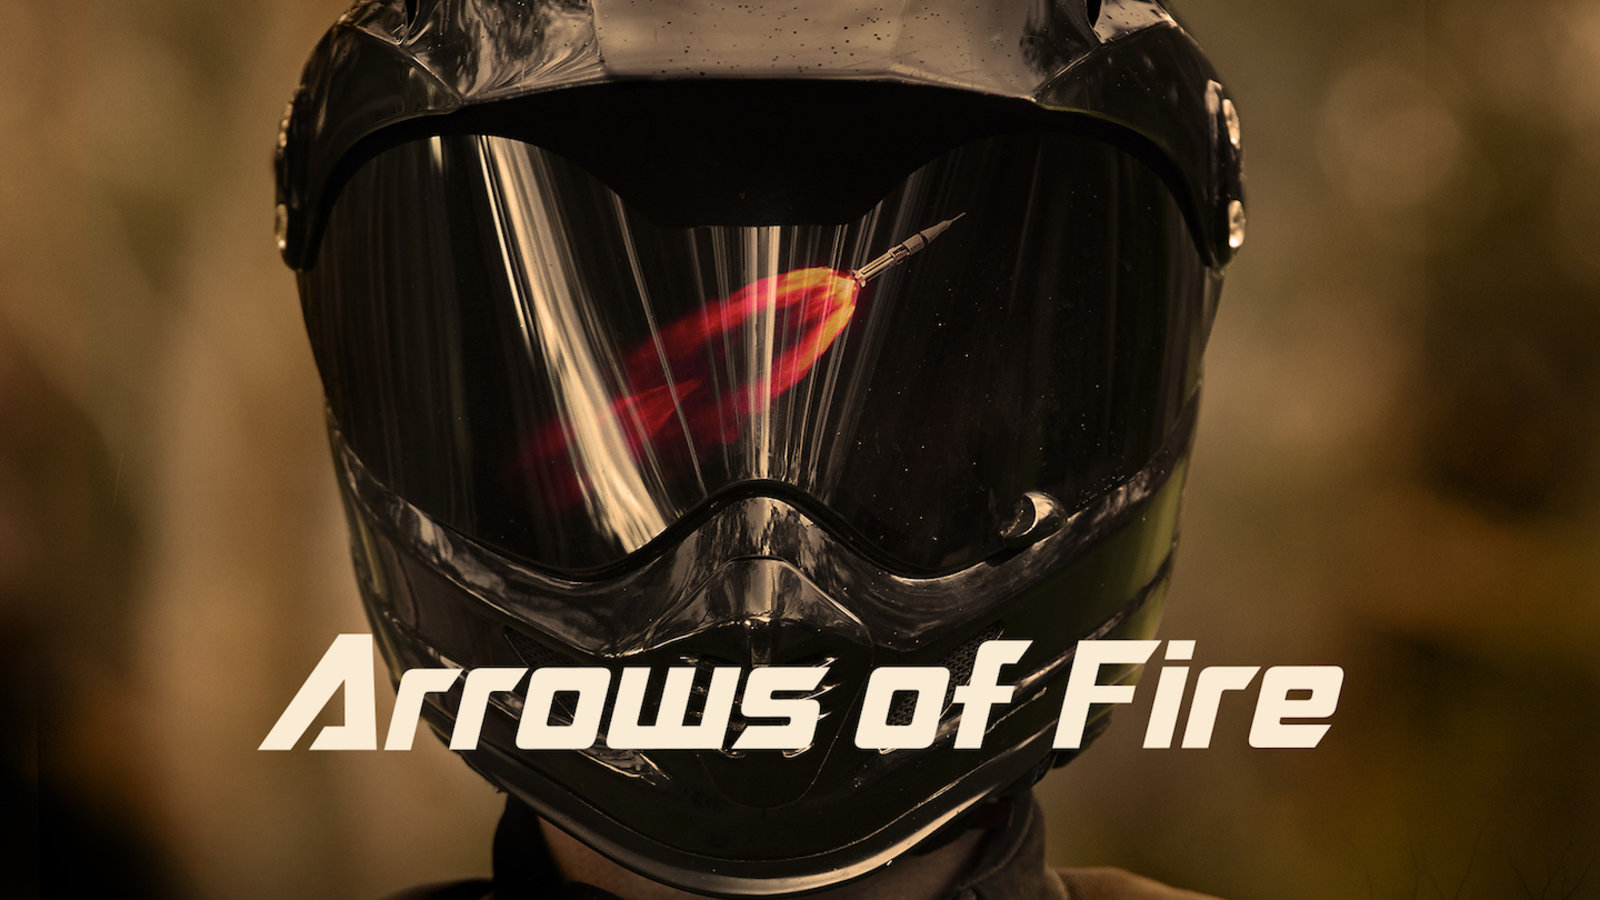 Arrows of Fire - Riding Across the Australian Outback